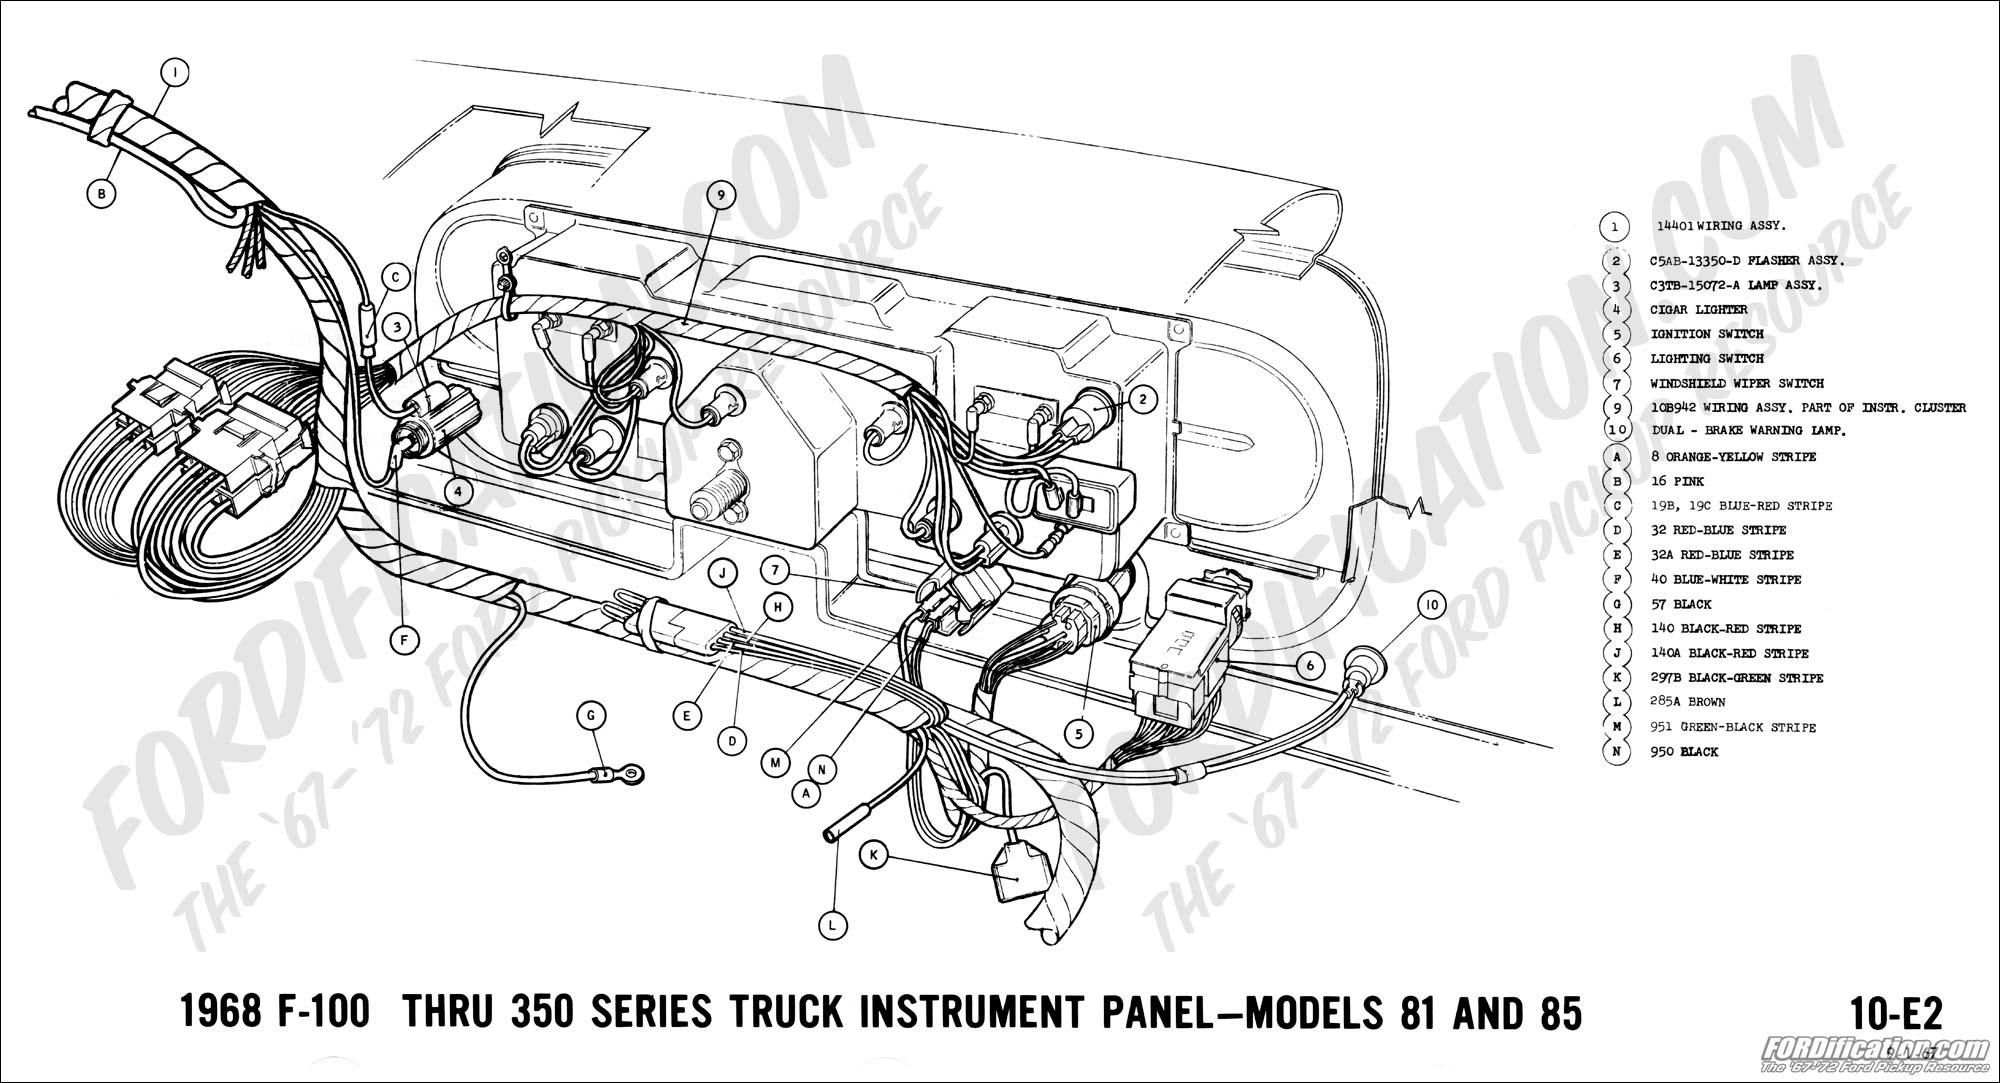 1971 Ford Bronco Wiring Diagram from www.fordification.com